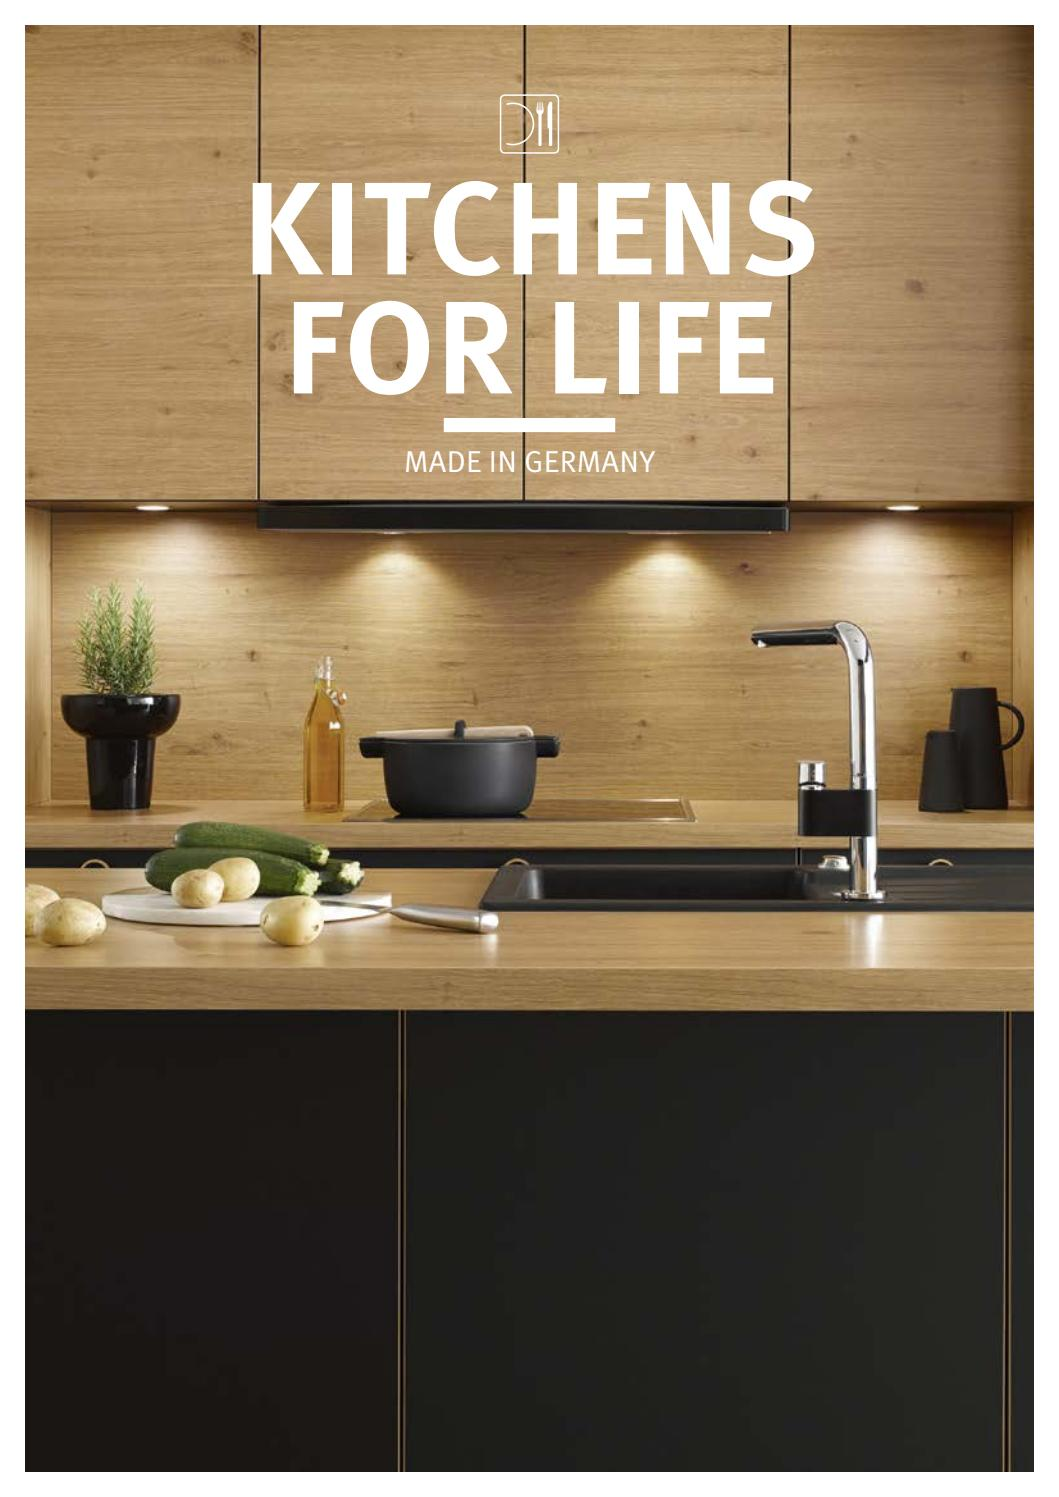 dd7c5168 Kitchens for Life by IP Luxembourg - issuu